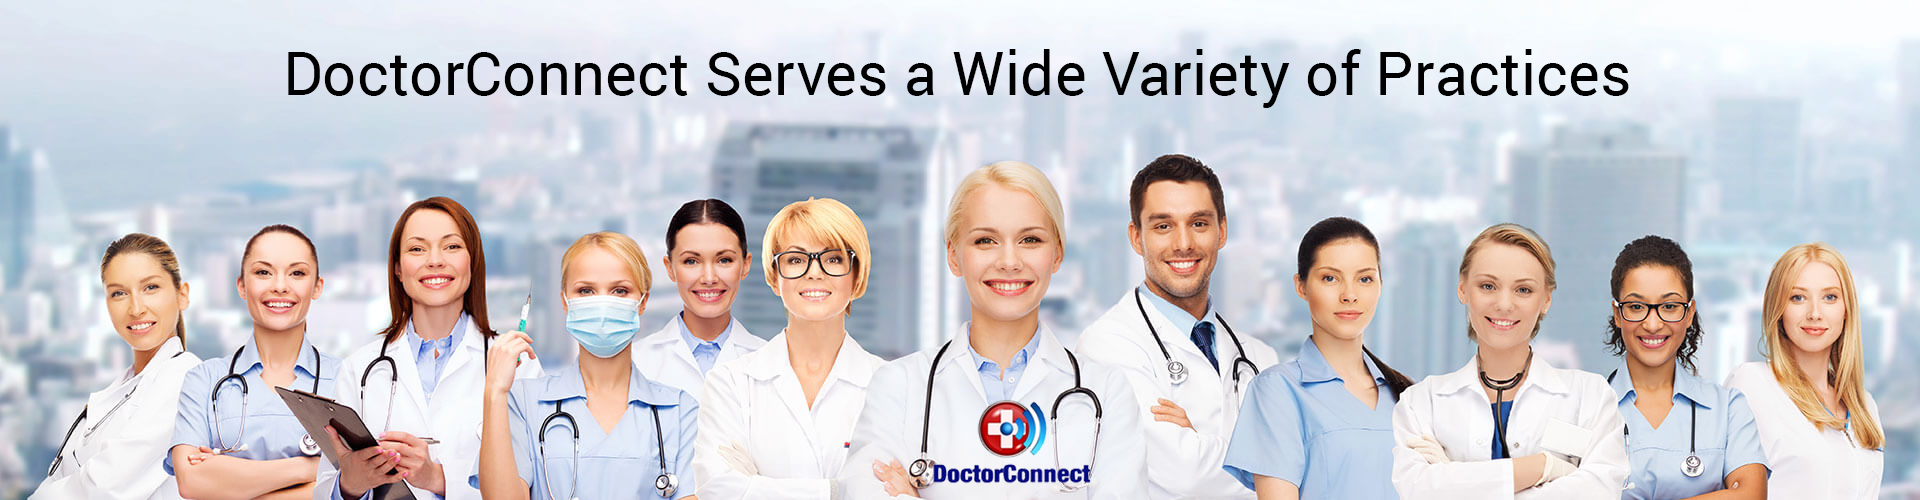 doctorconnect who we serve